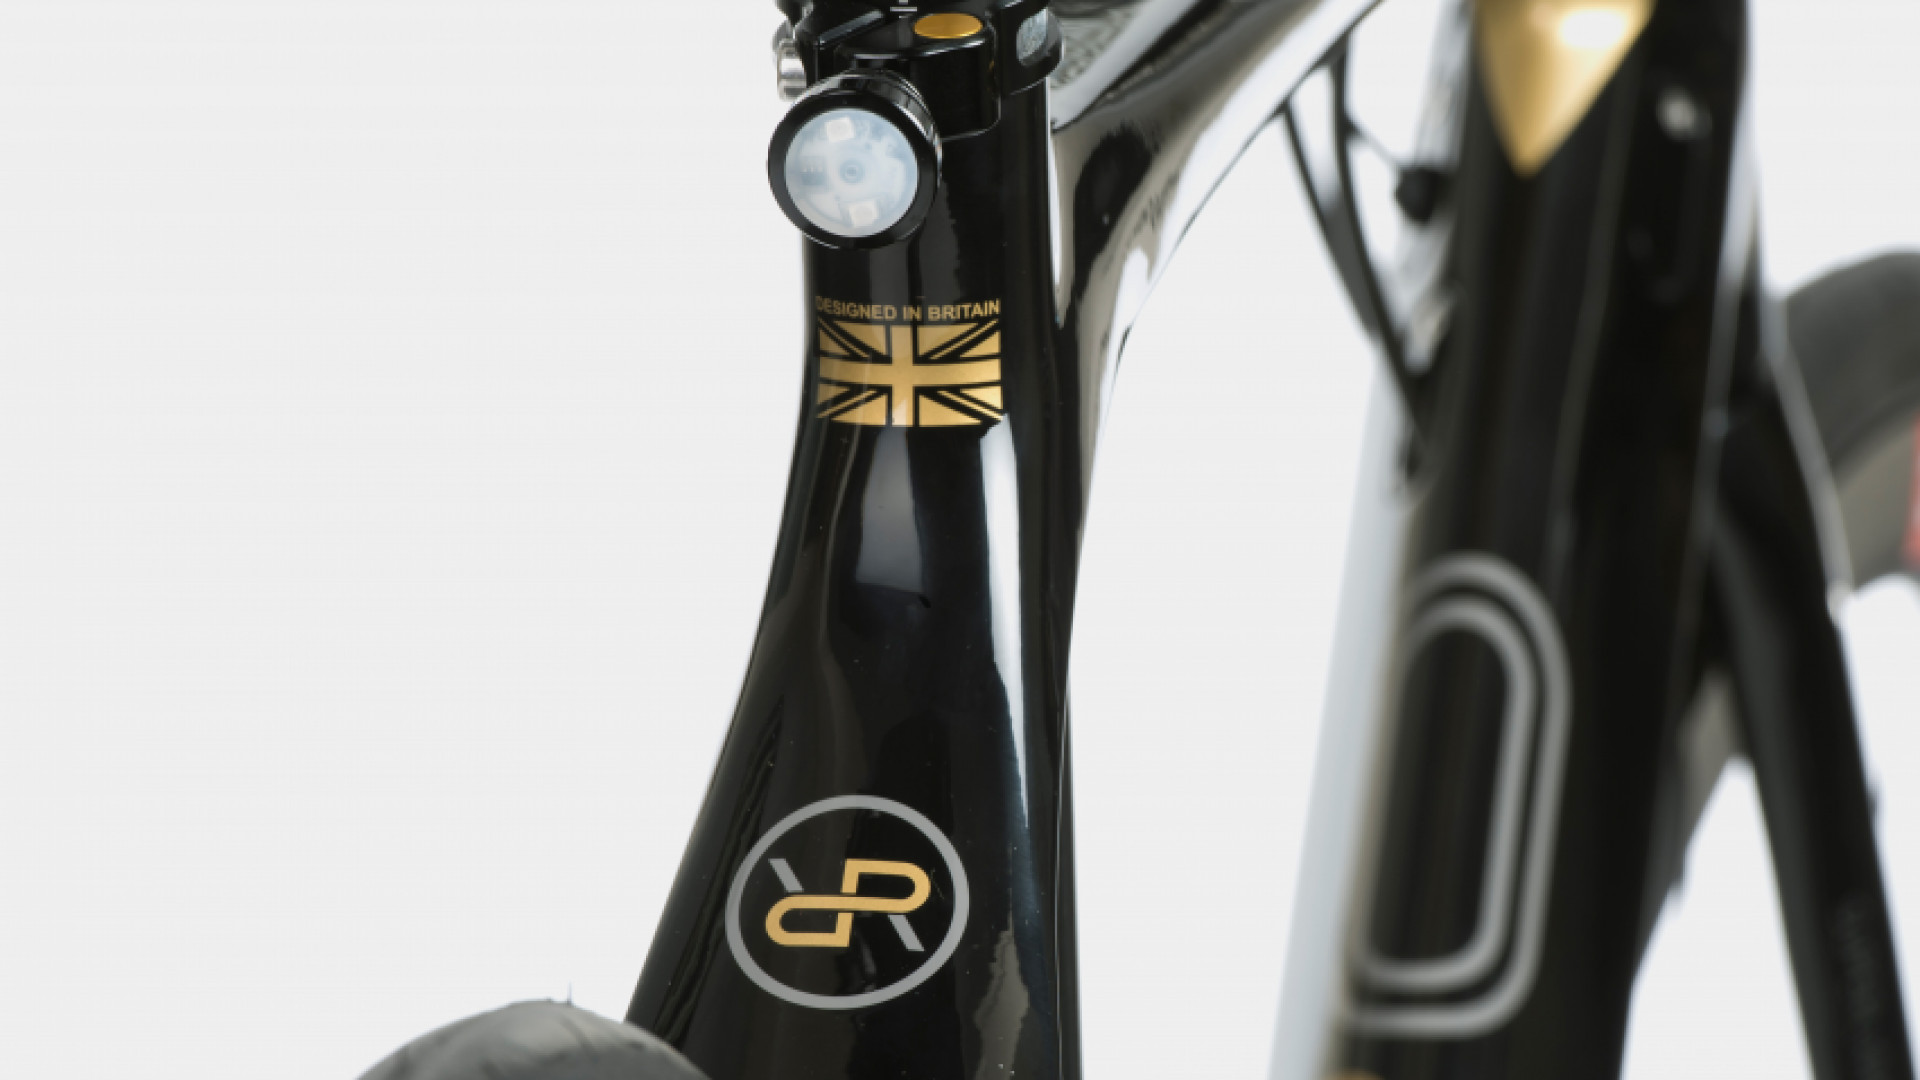 Close up photo of the Orro Gold STC bike frame with the Orro Gold logo